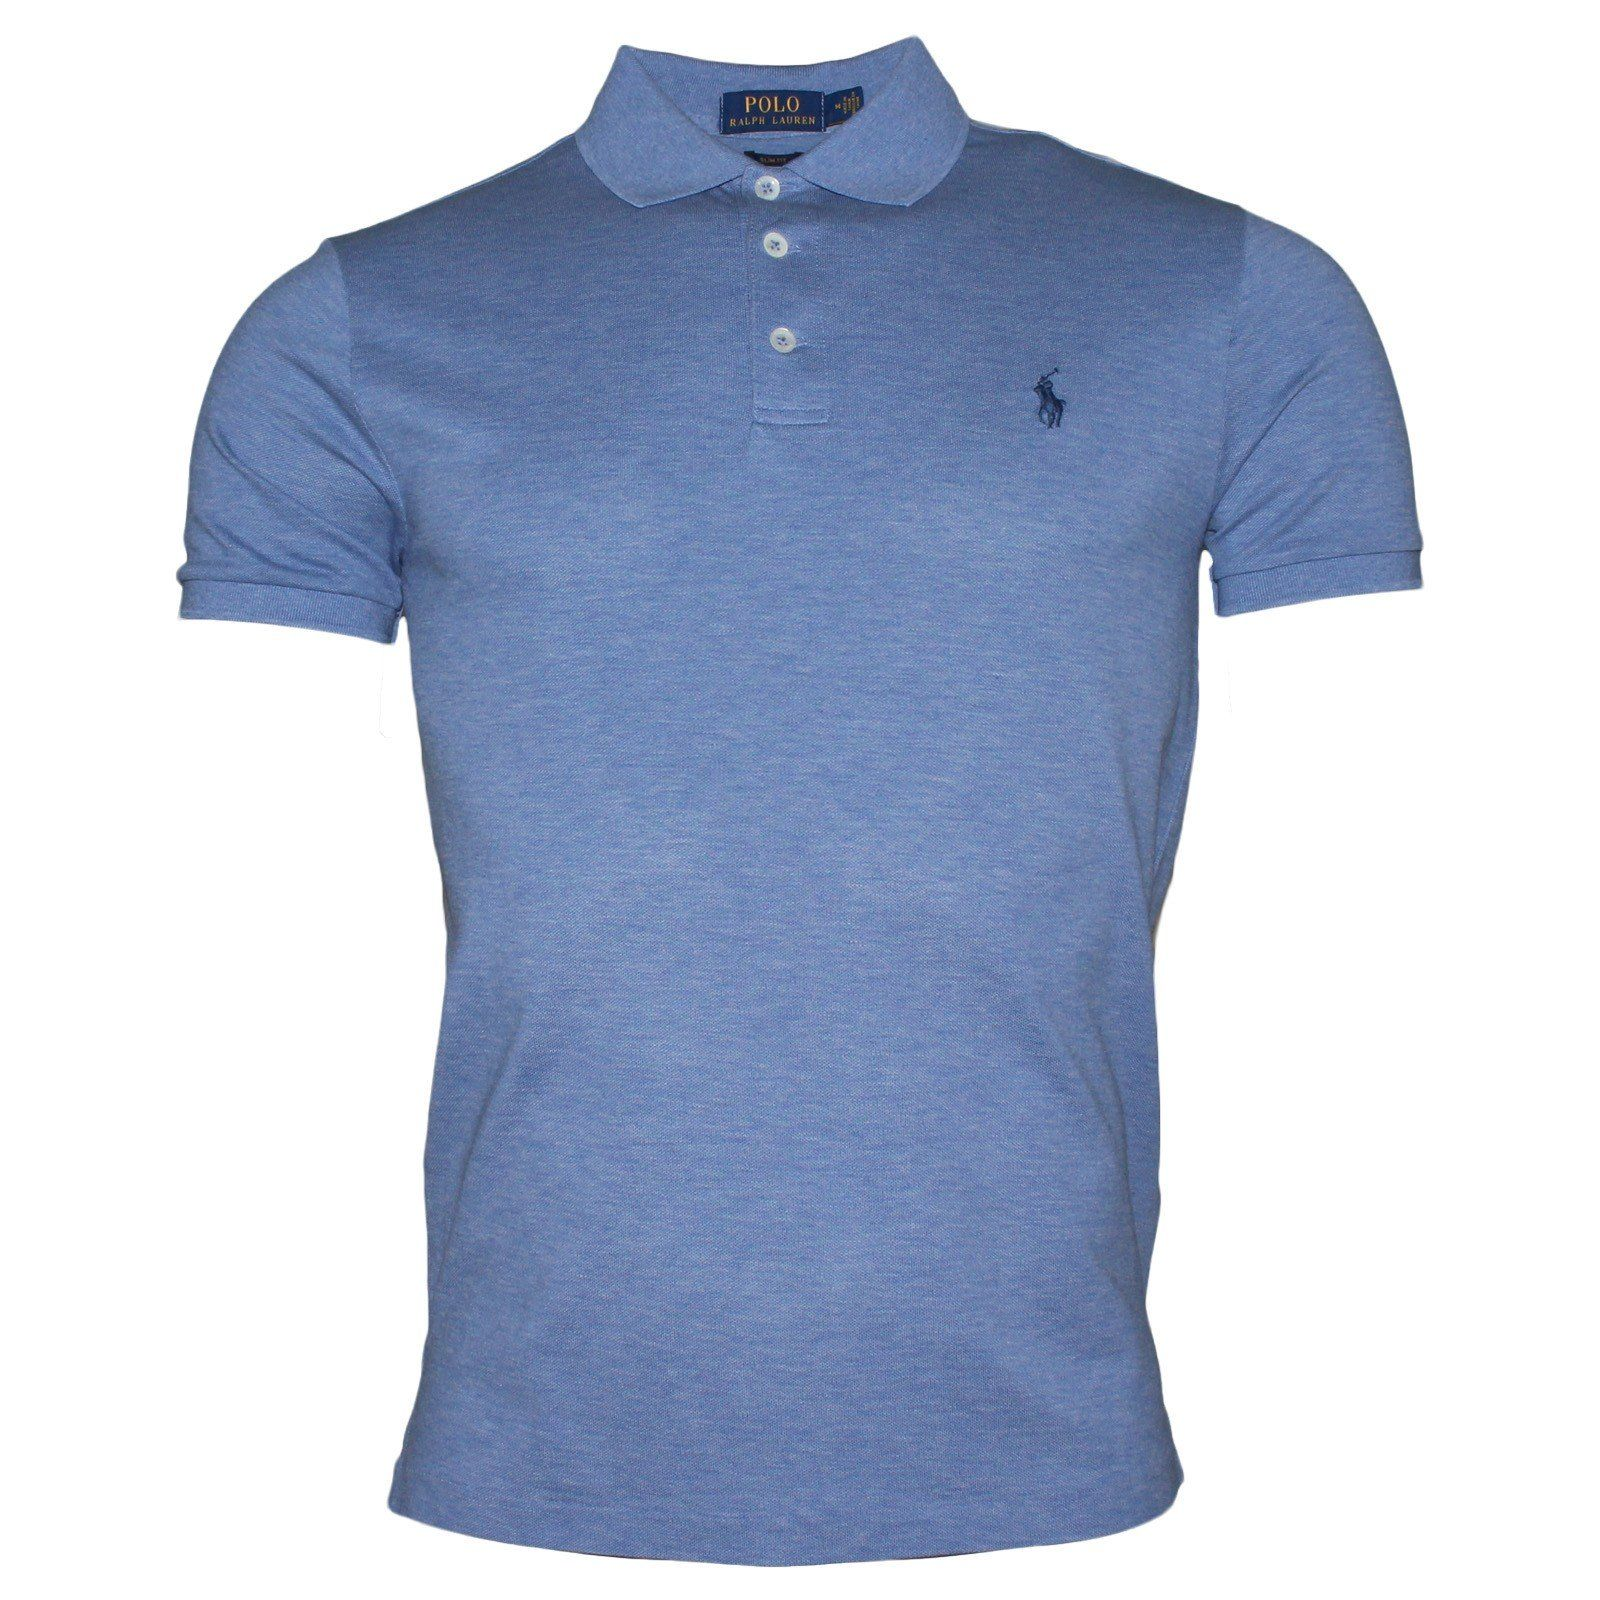 28be5740 Polo Ralph Lauren Weathered Slim Fit Polo Shirt available to buy at ...